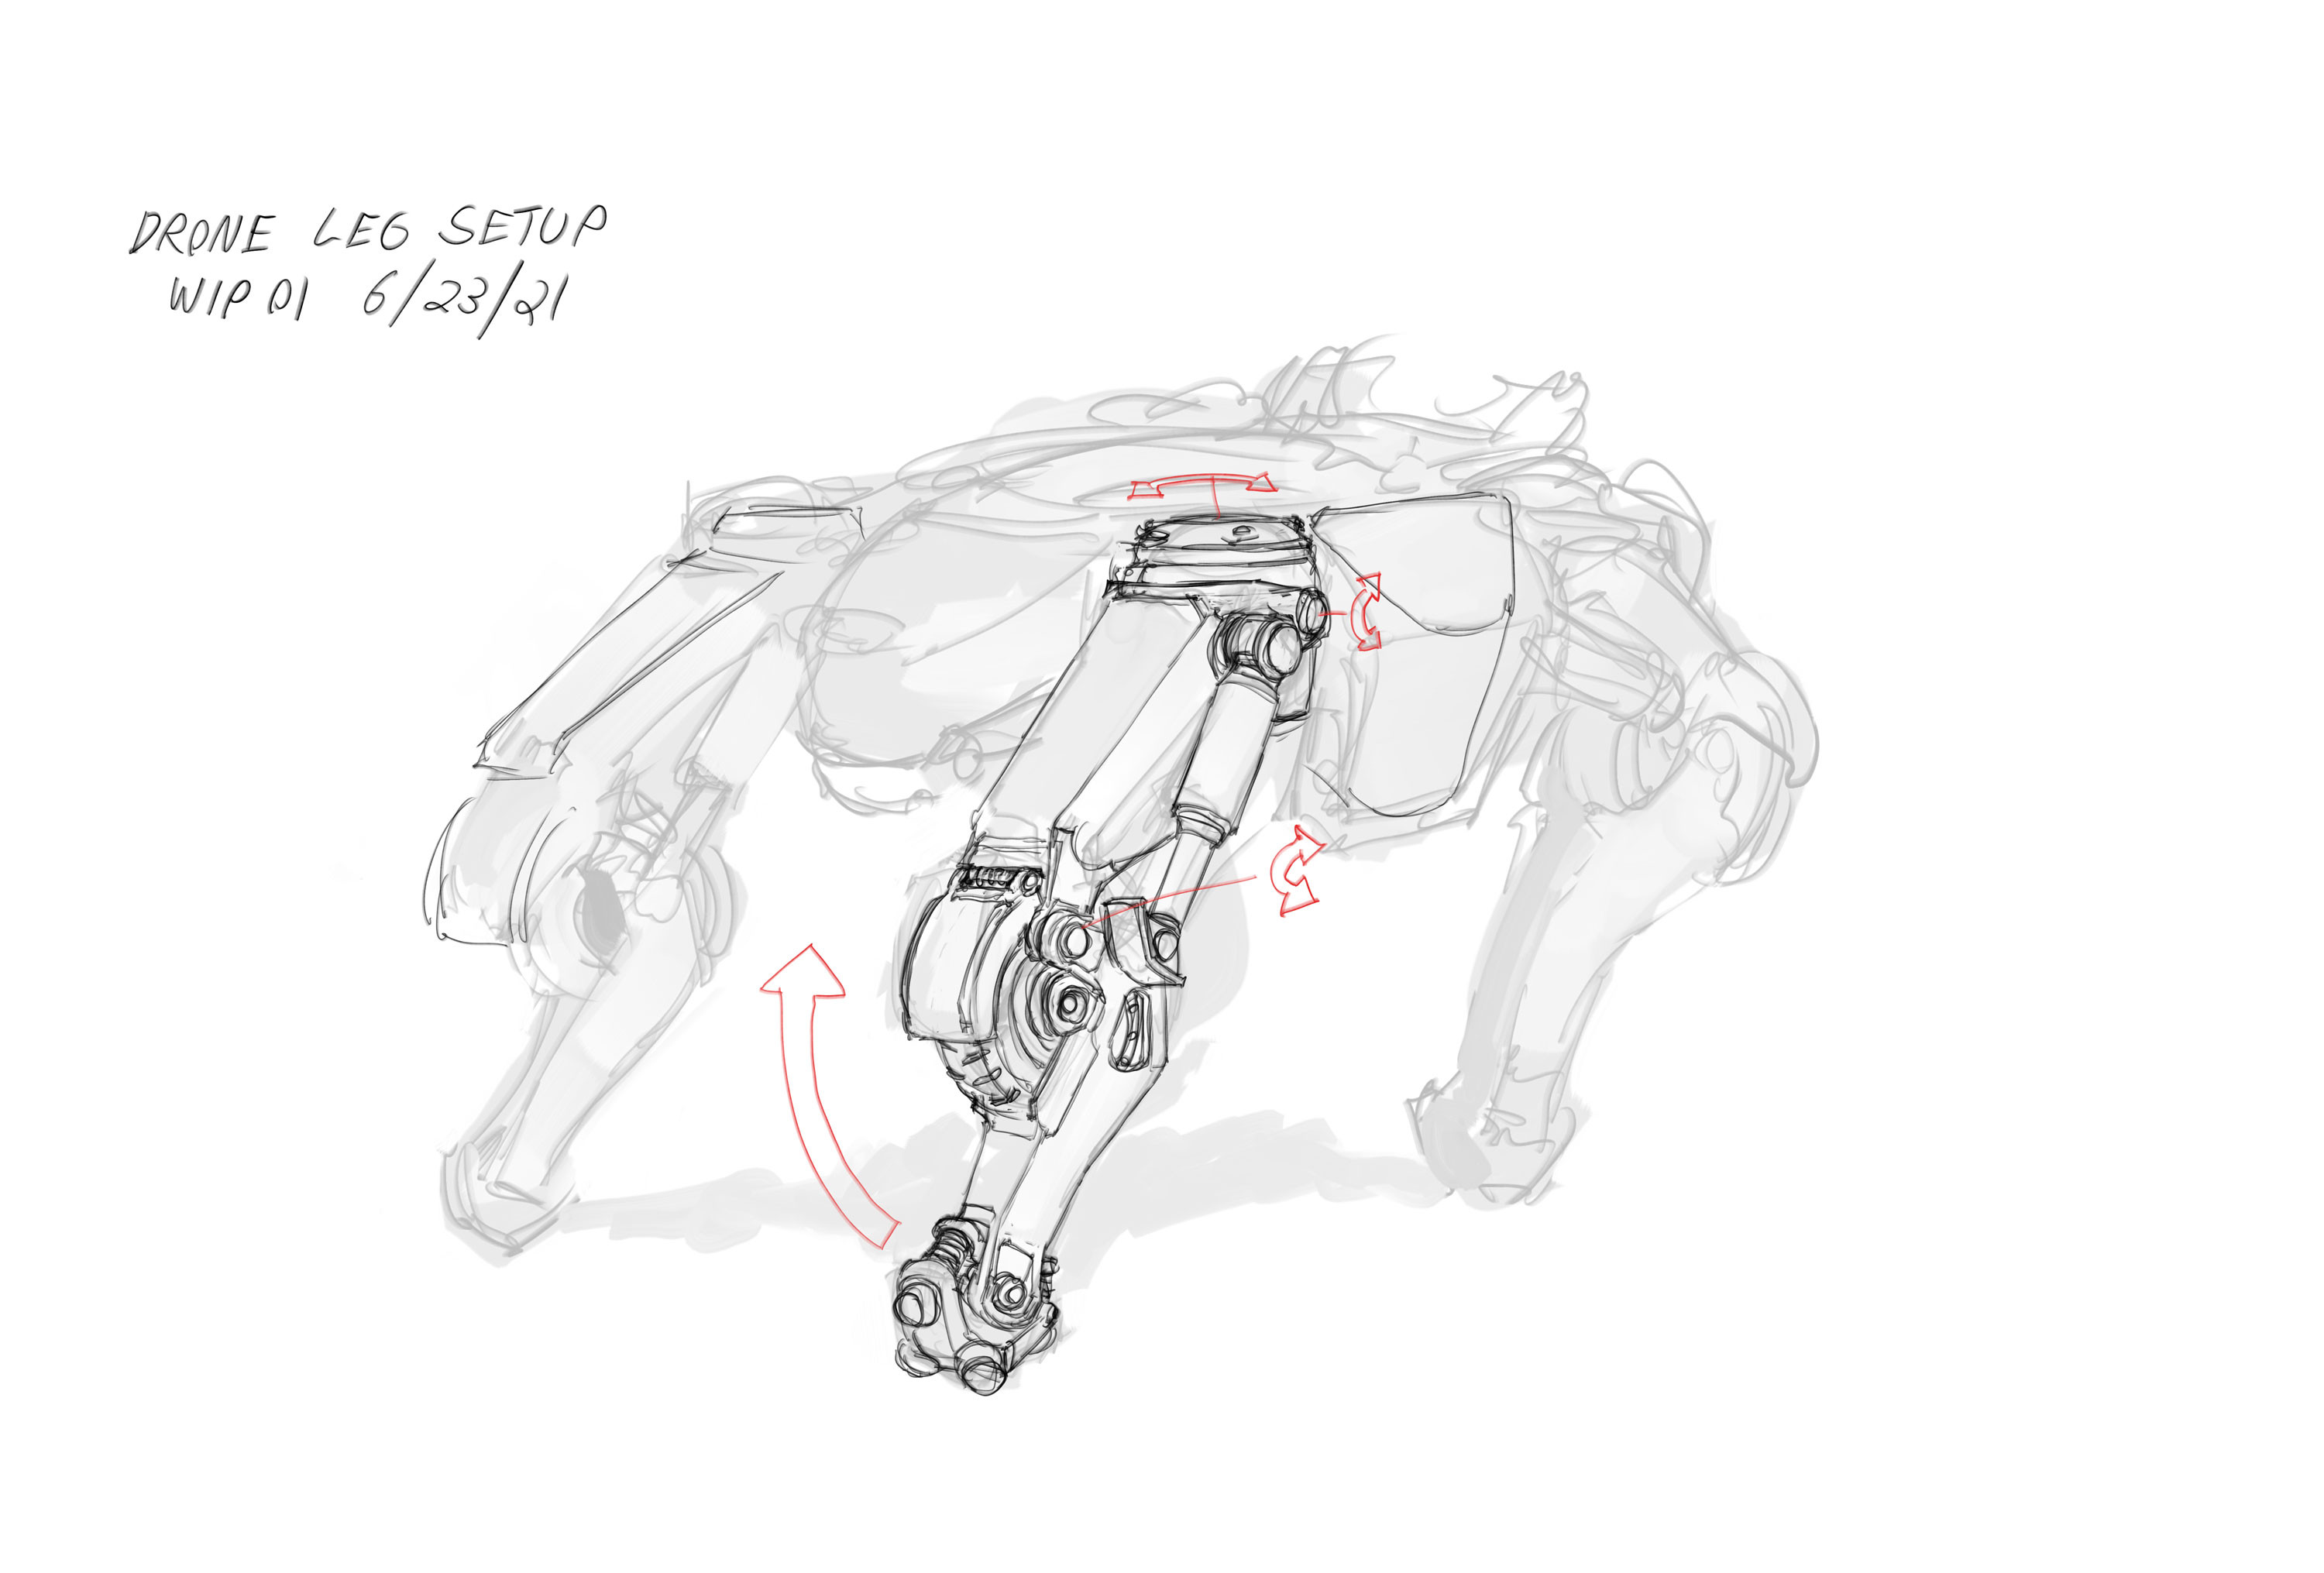 The legs convert between walking and rolling so the leg setup was iterated upon based on feedback.